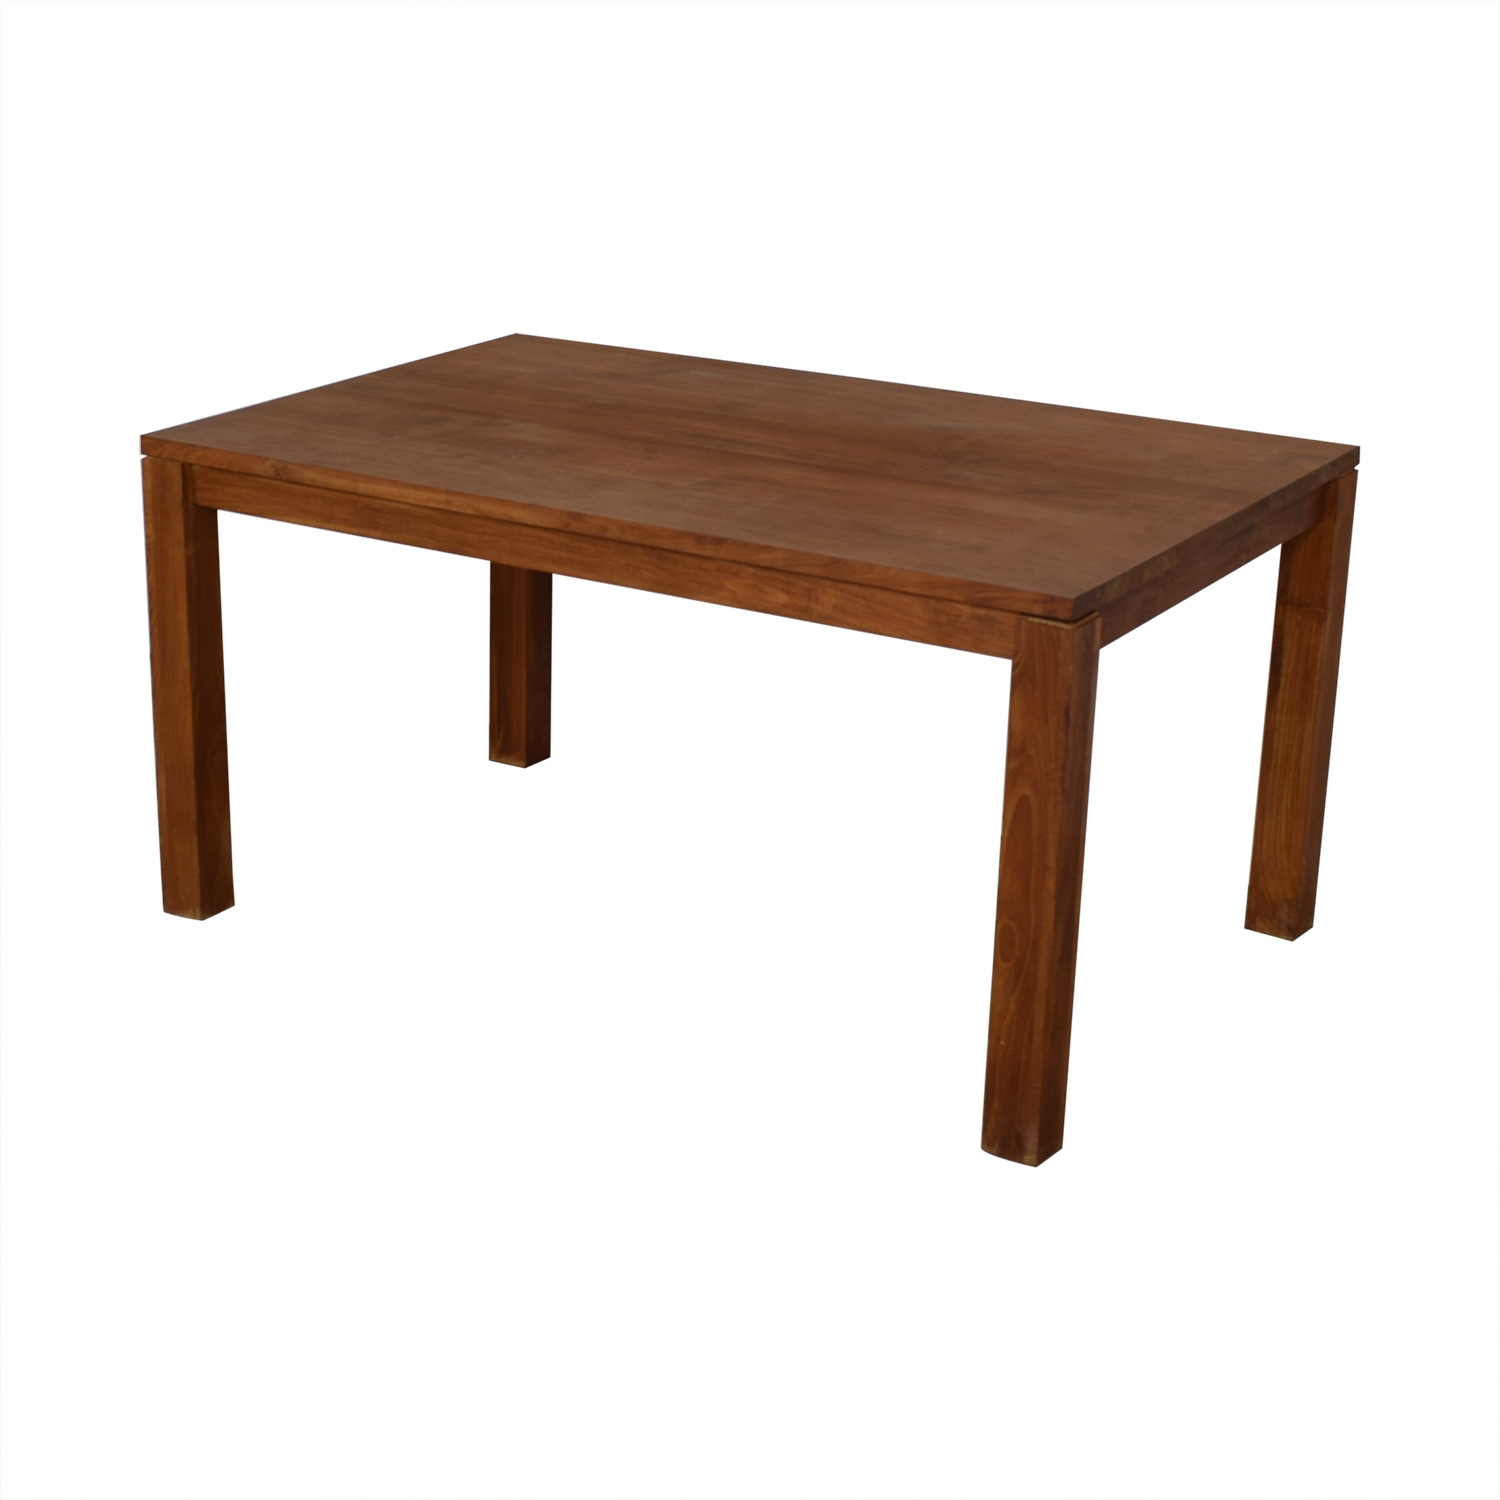 Crate & Barrel Crate & Barrel Rectangular Dining Table used